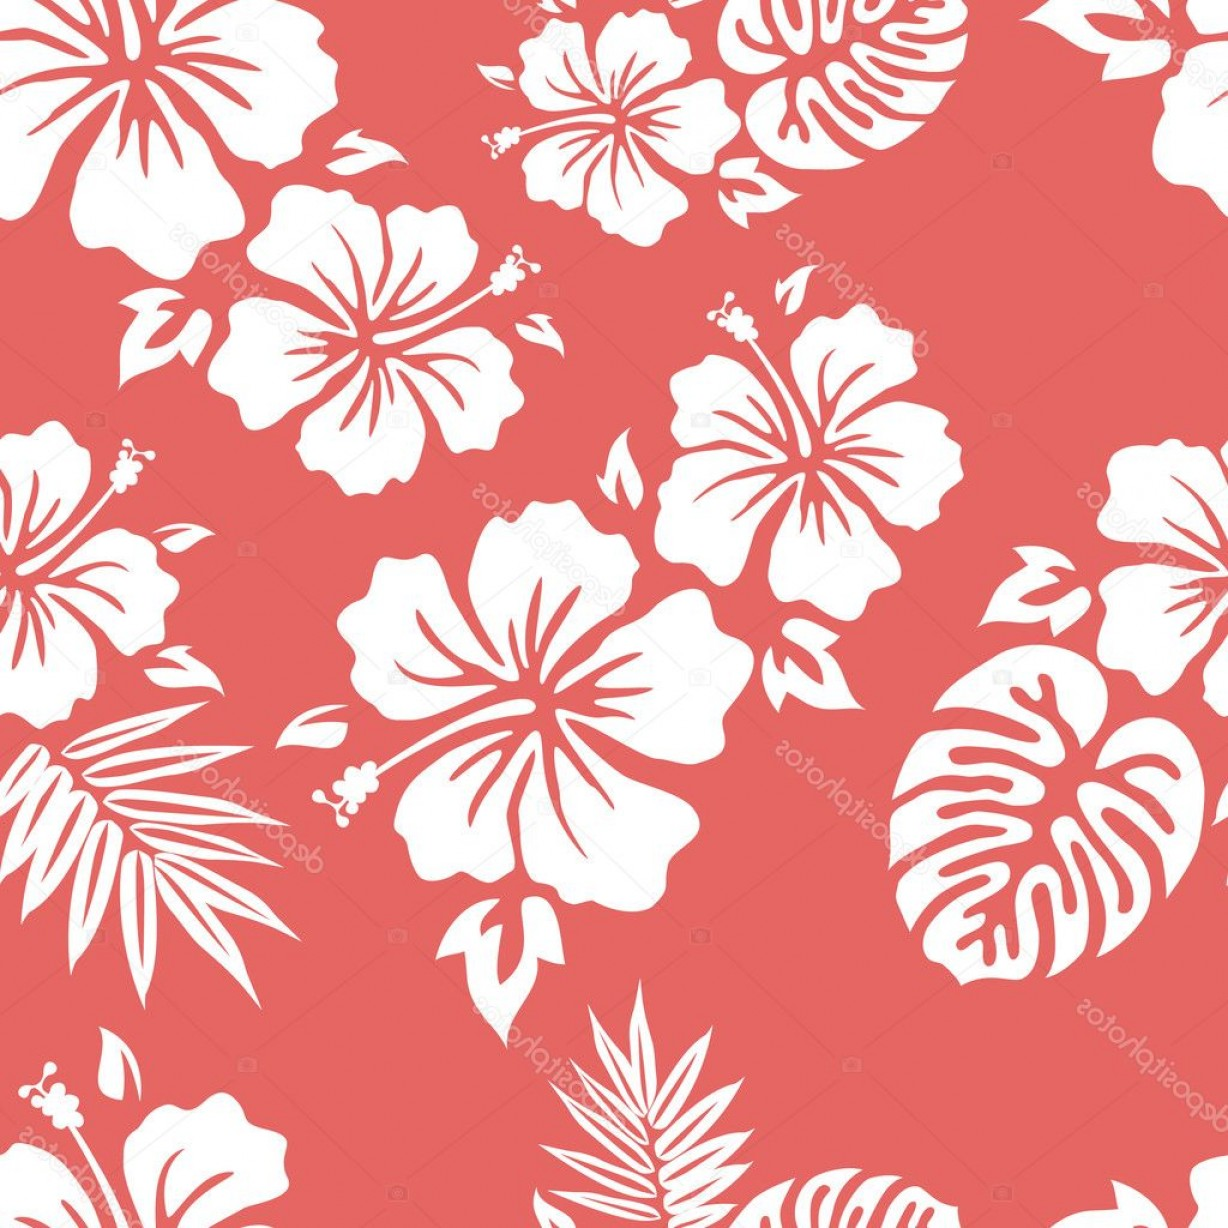 Hawaiian Pattern Vector: Stock Illustration Hawaiian Aloha Shirt Pattern